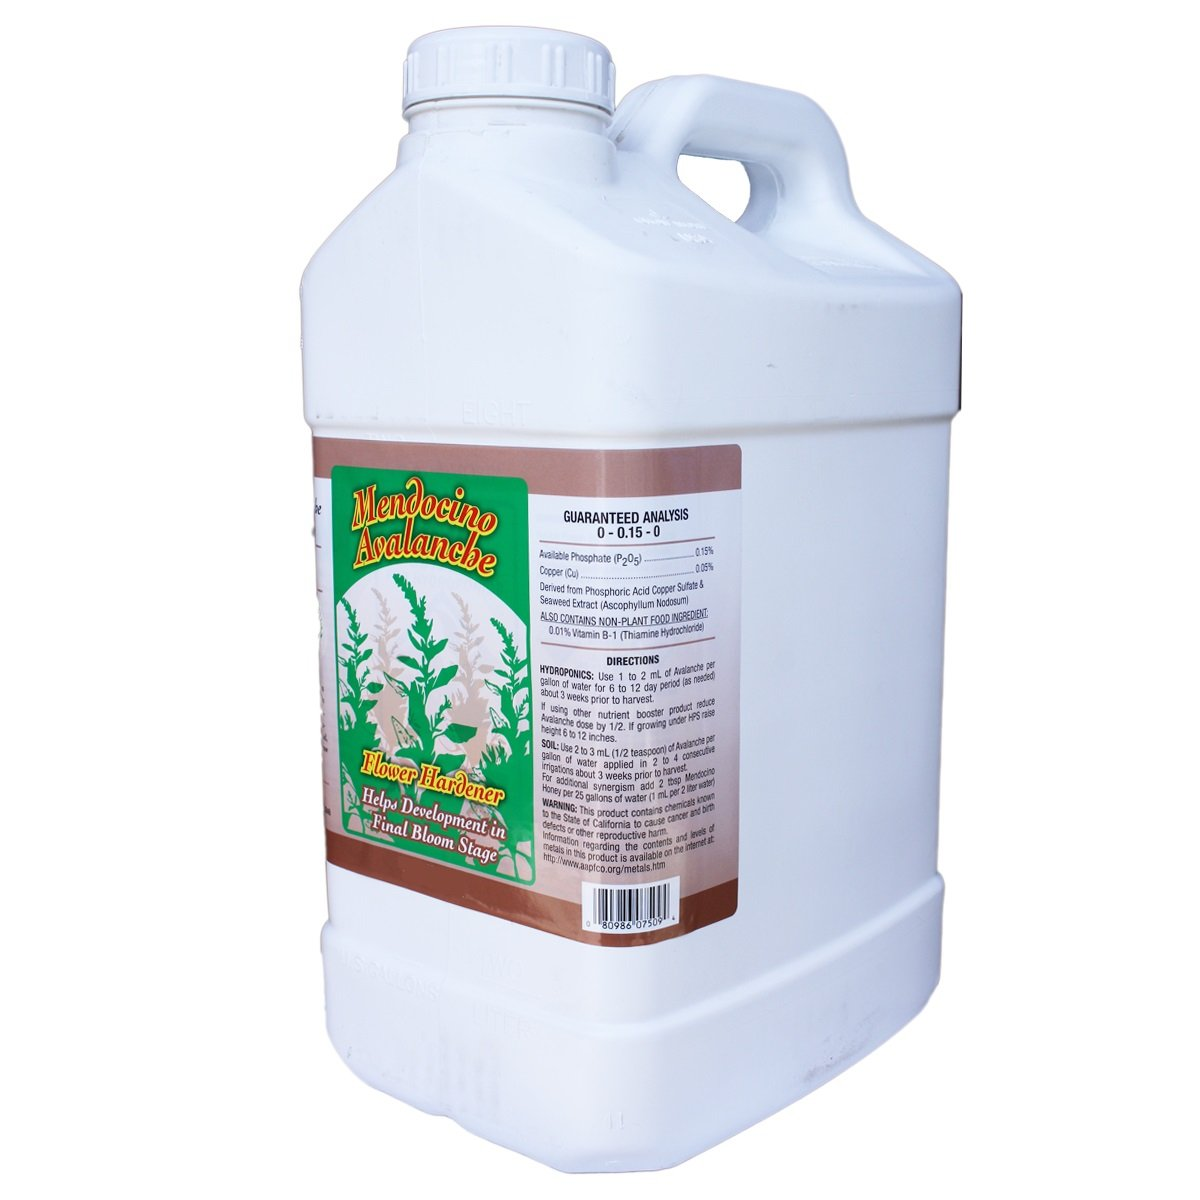 Grow More 7502 Mendocino Avalanche, 2.5-Gallon by Grow More